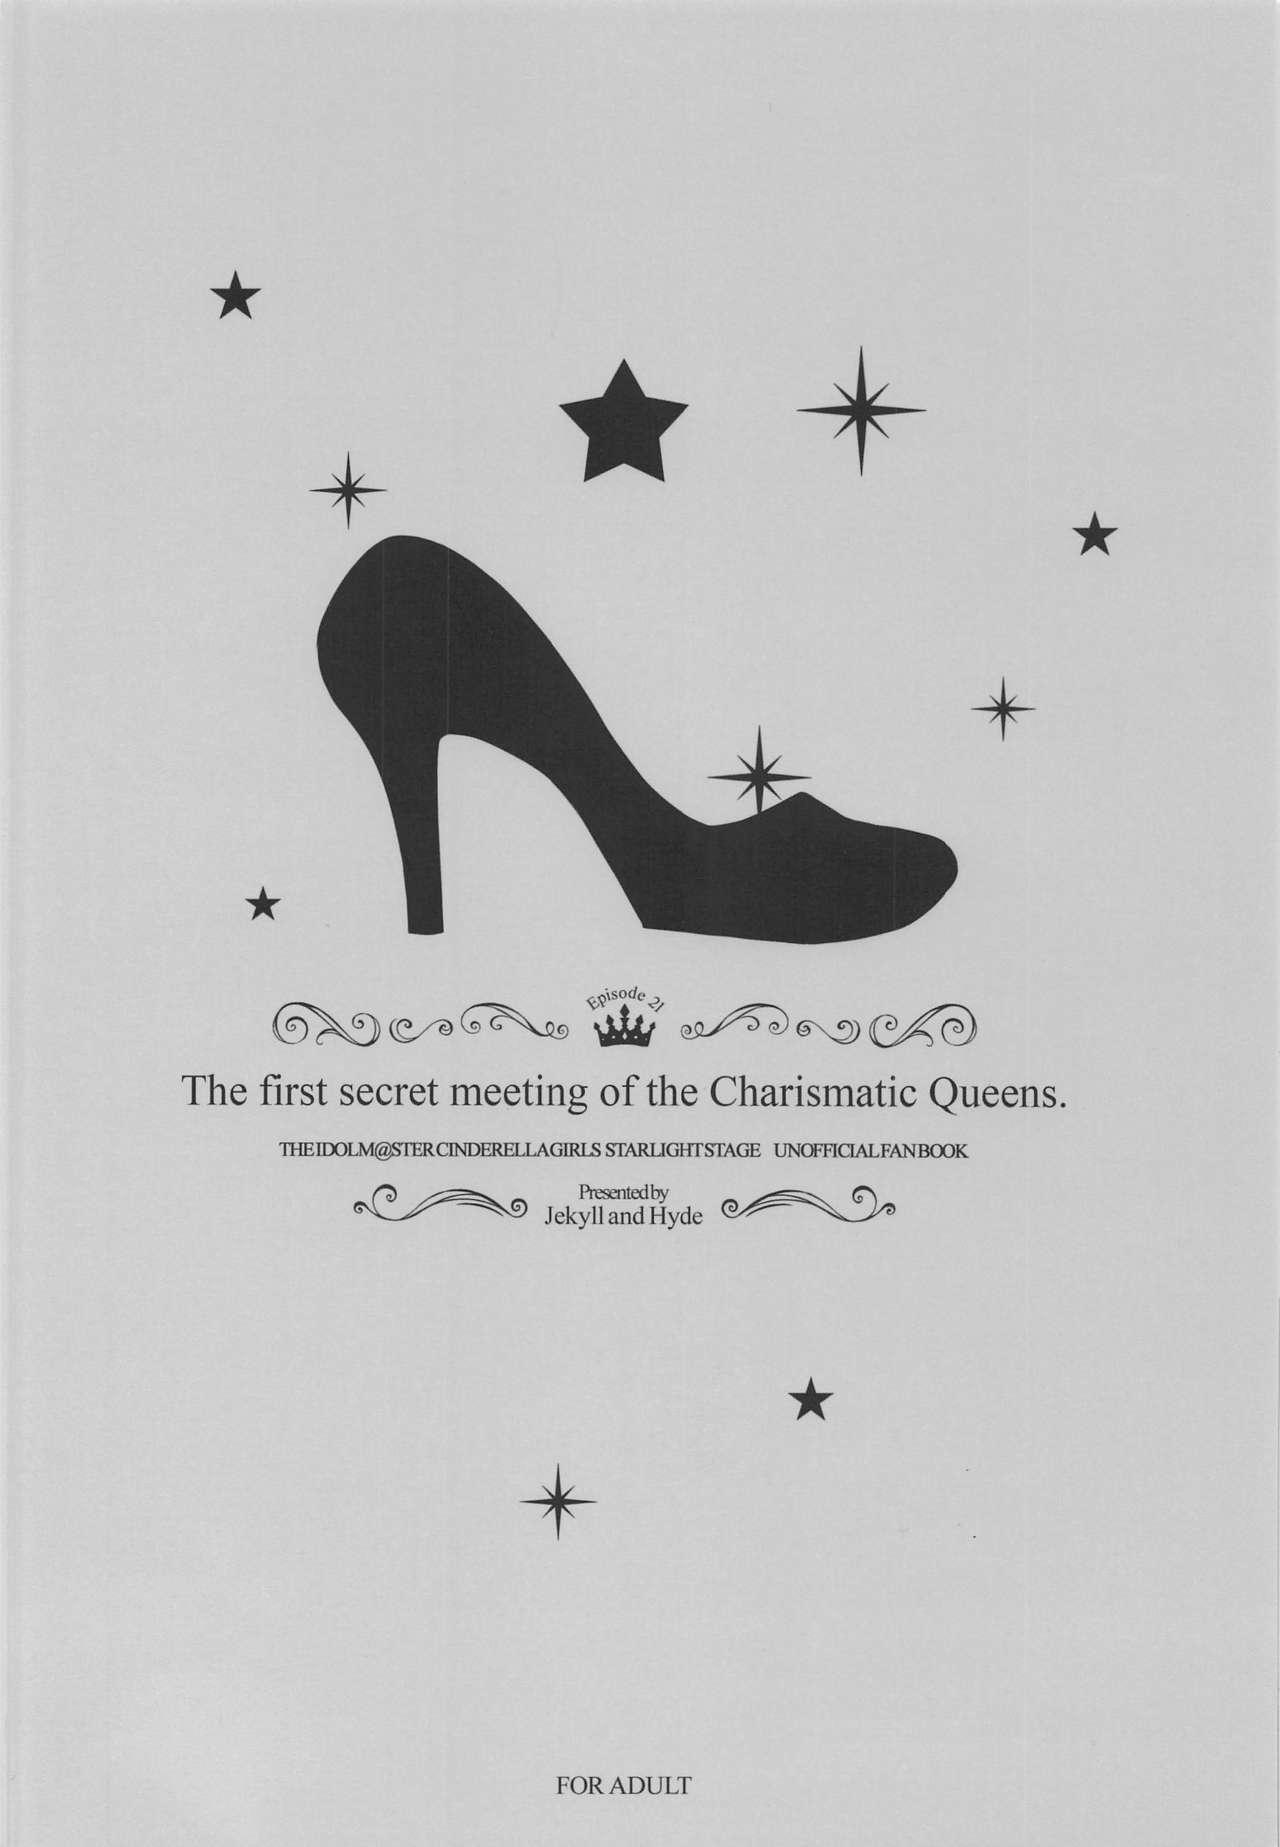 The first secret meeting of the Charismatic Queens. 29